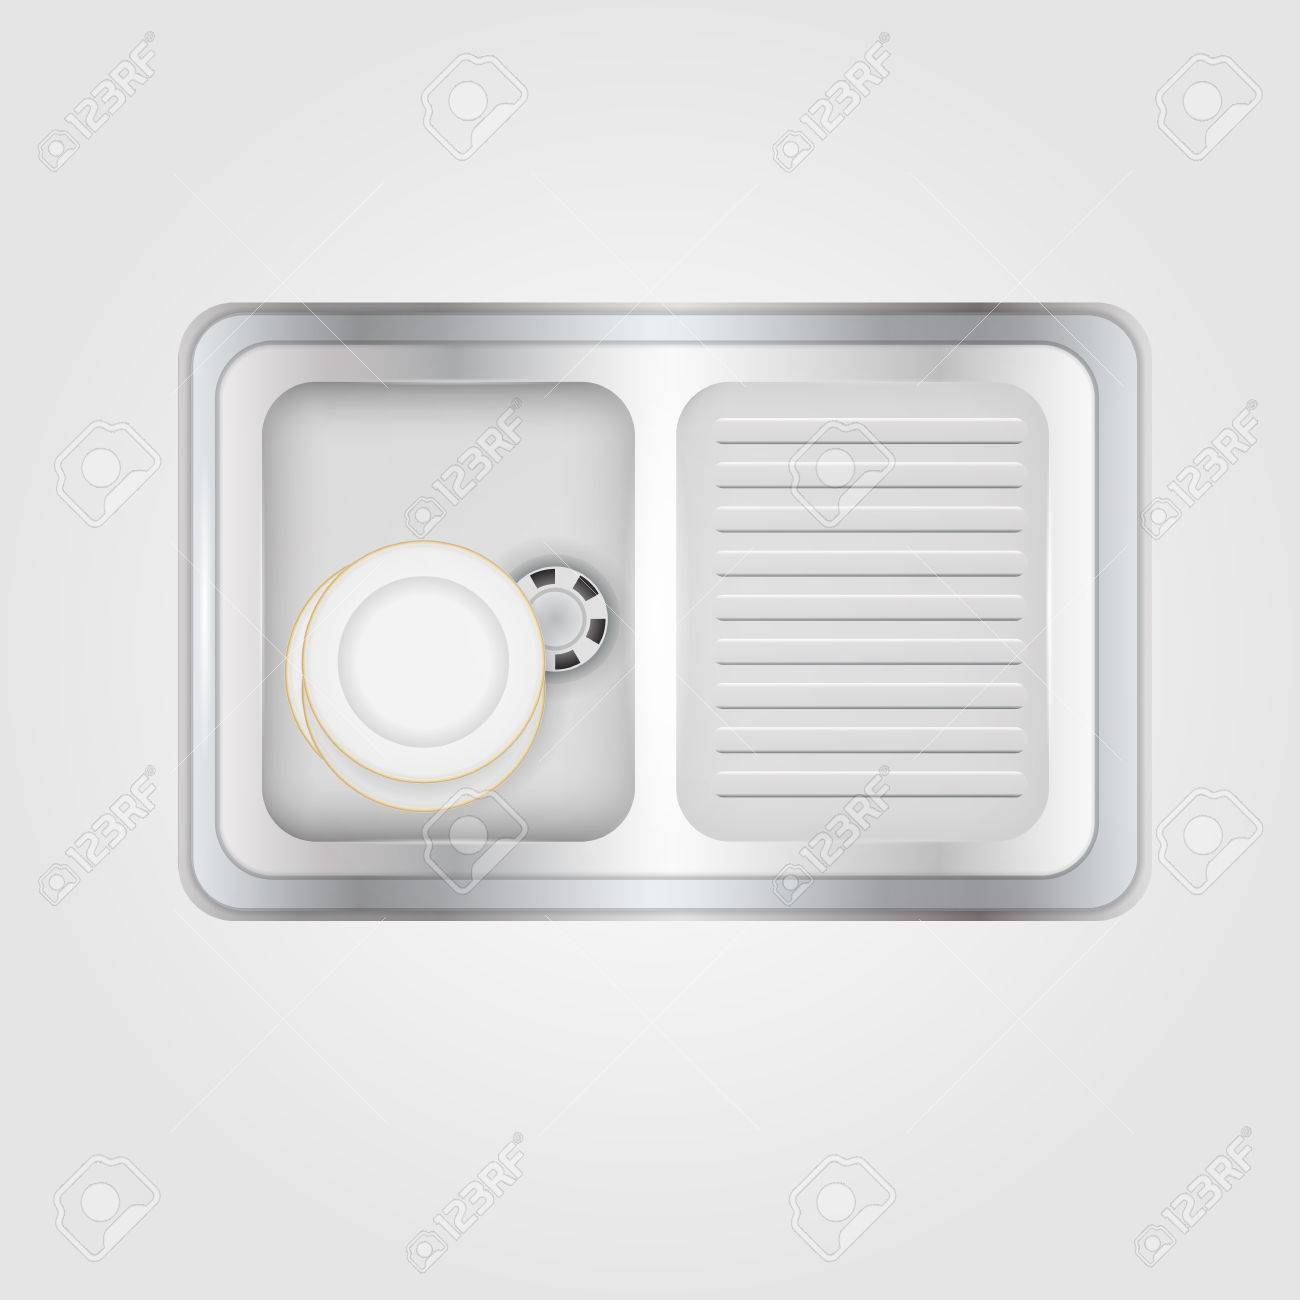 Metallic Kitchen Sink With White Plates A Top View Isolated